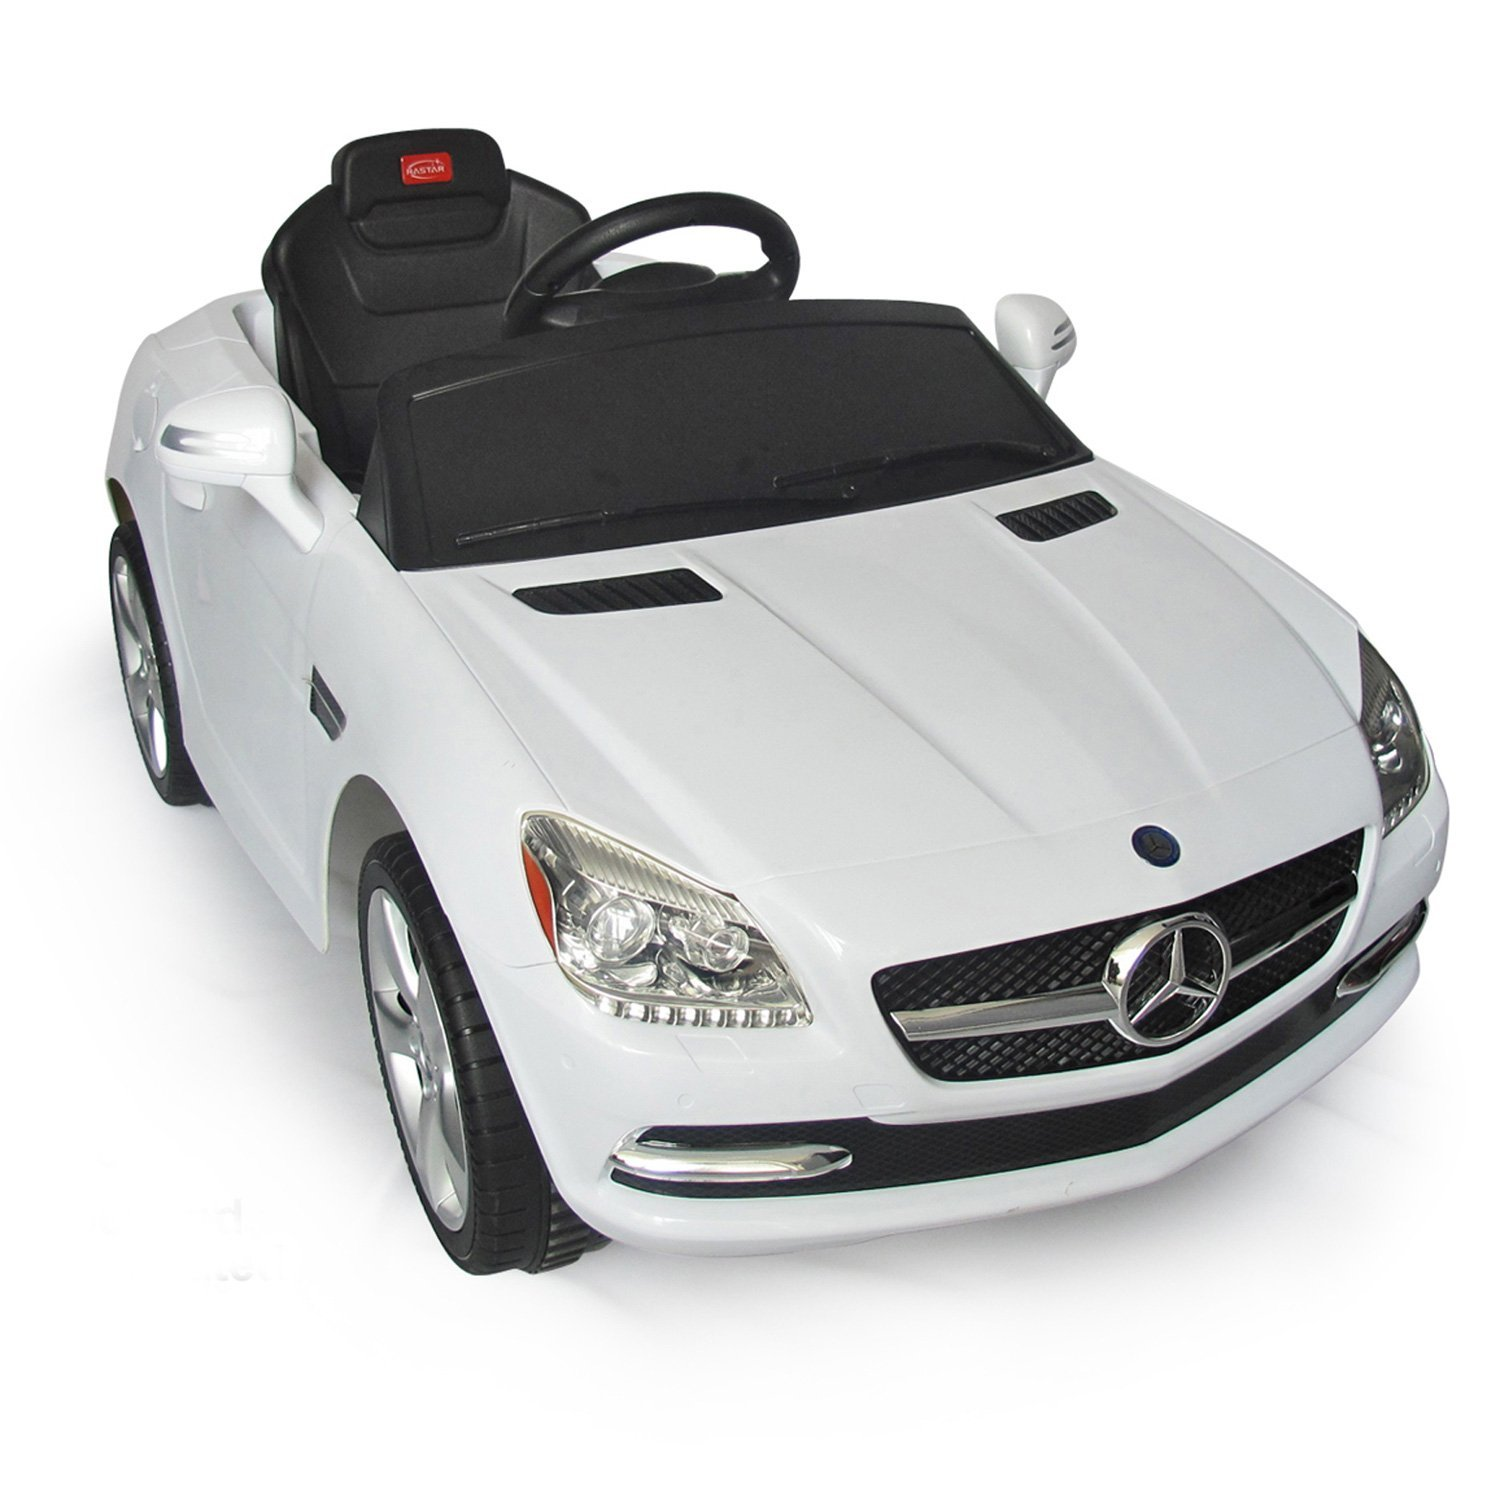 Toy Cars for Kids to Drive Fresh Mercedes Benz Slk Rc Kids Electric Ride On Car – Back to the Future